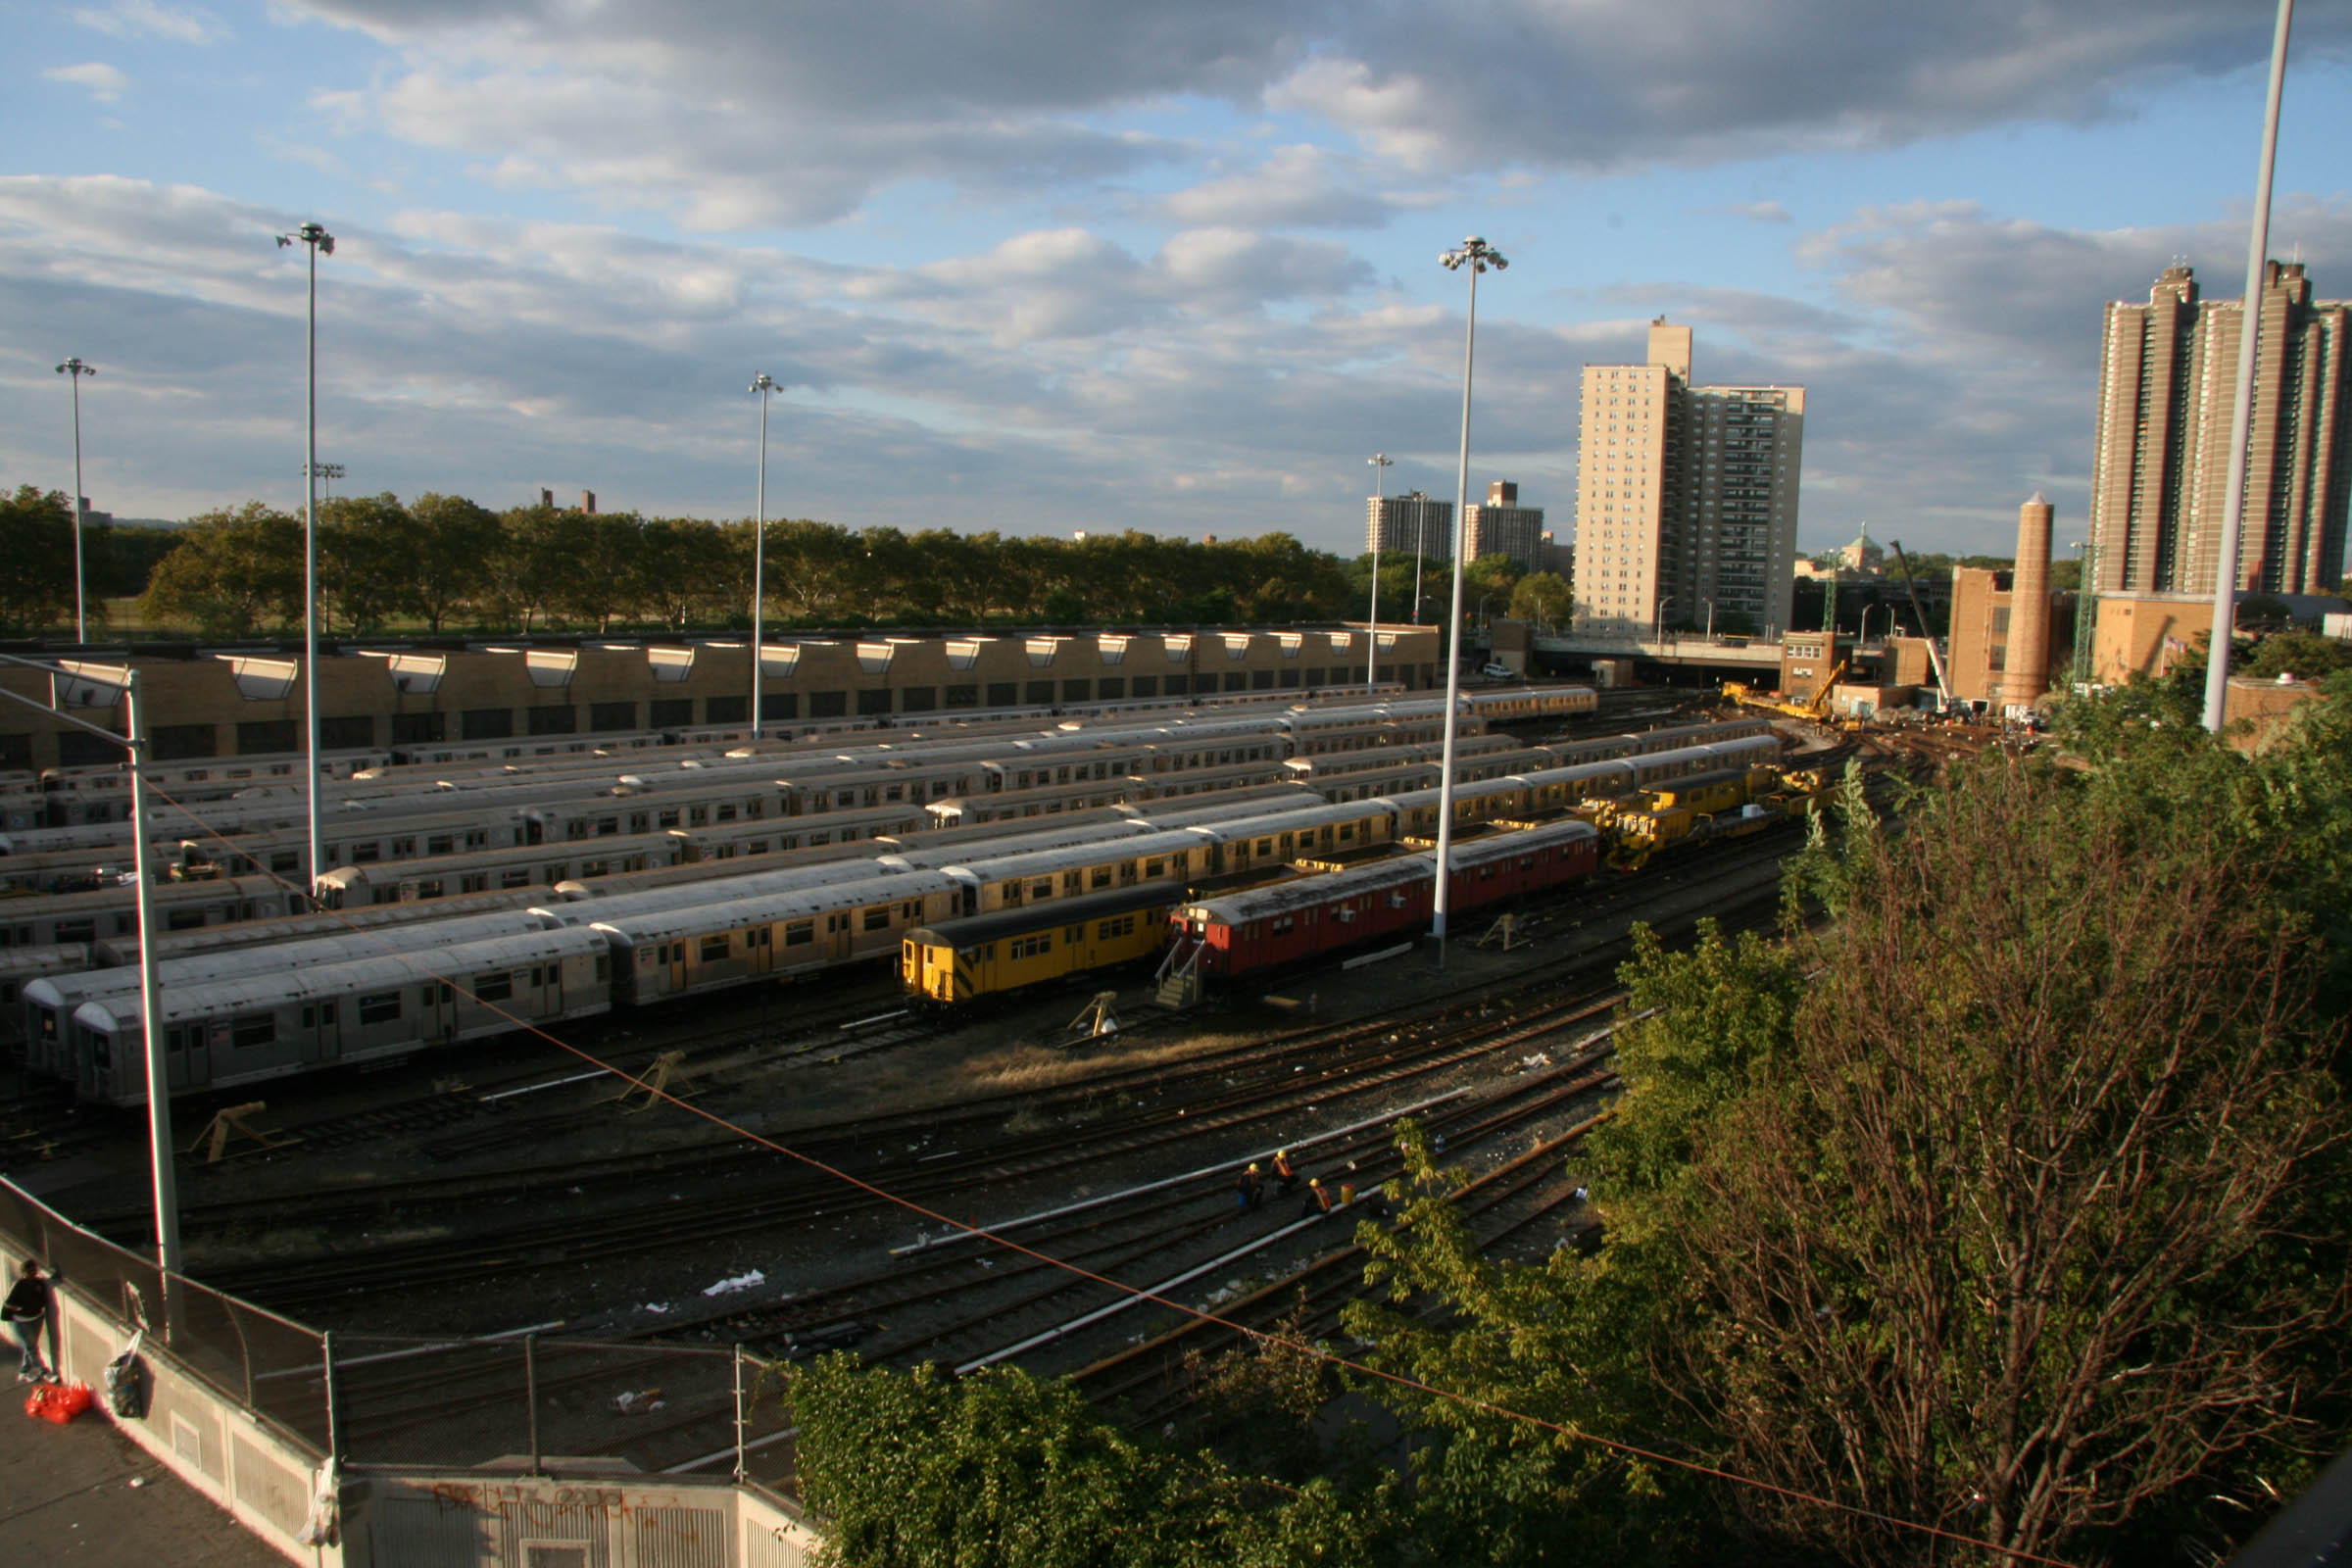 Bedford Park/Grand Concourse Yard, Bedford Park Blvd., the Bronx, NY, 2007.